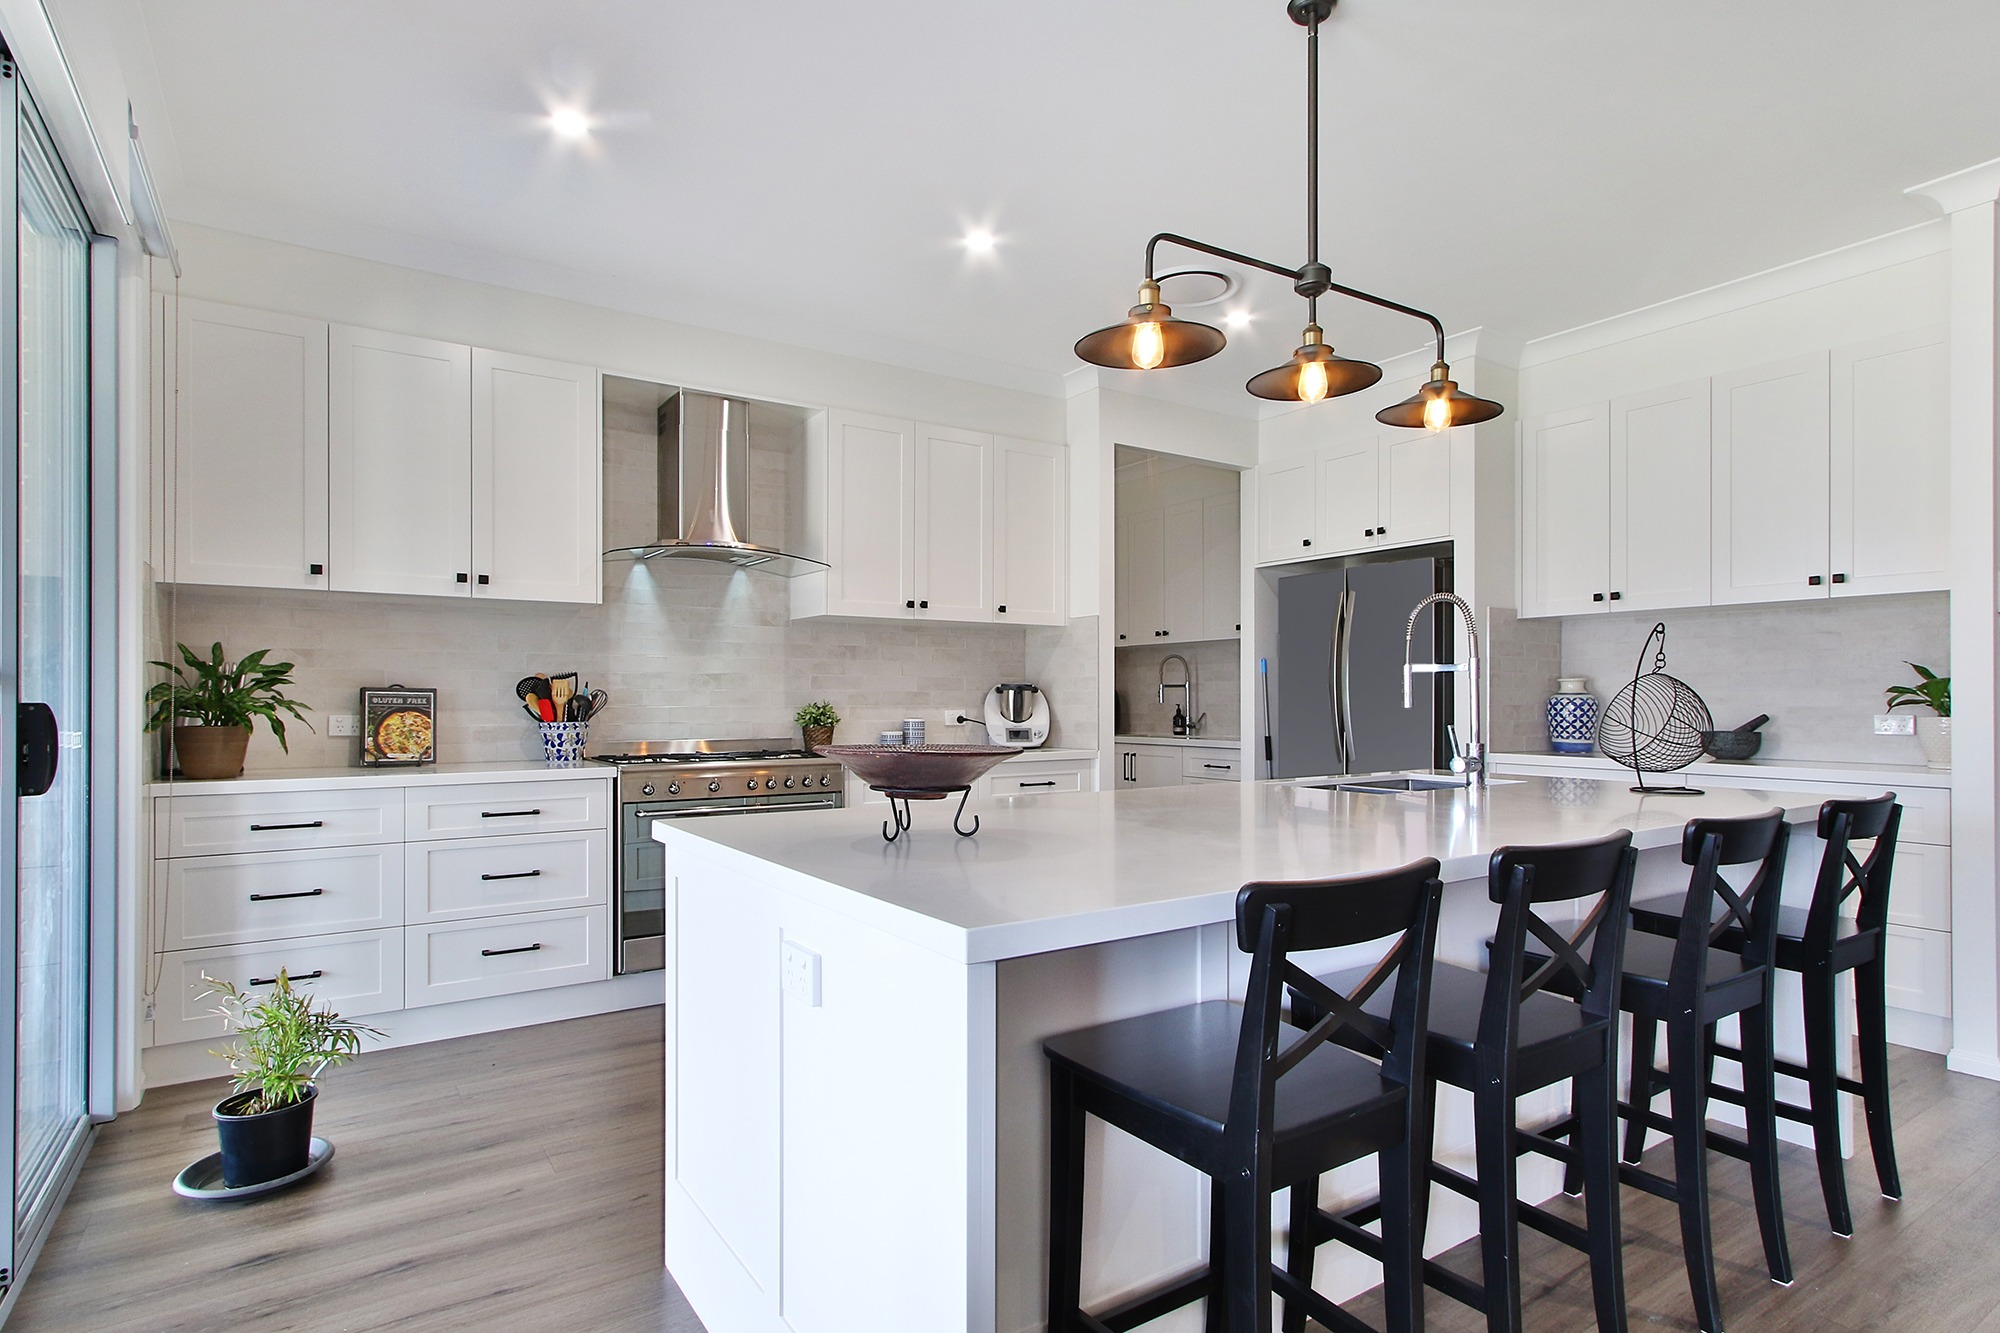 Kitchen Renovation Costs For Your Home